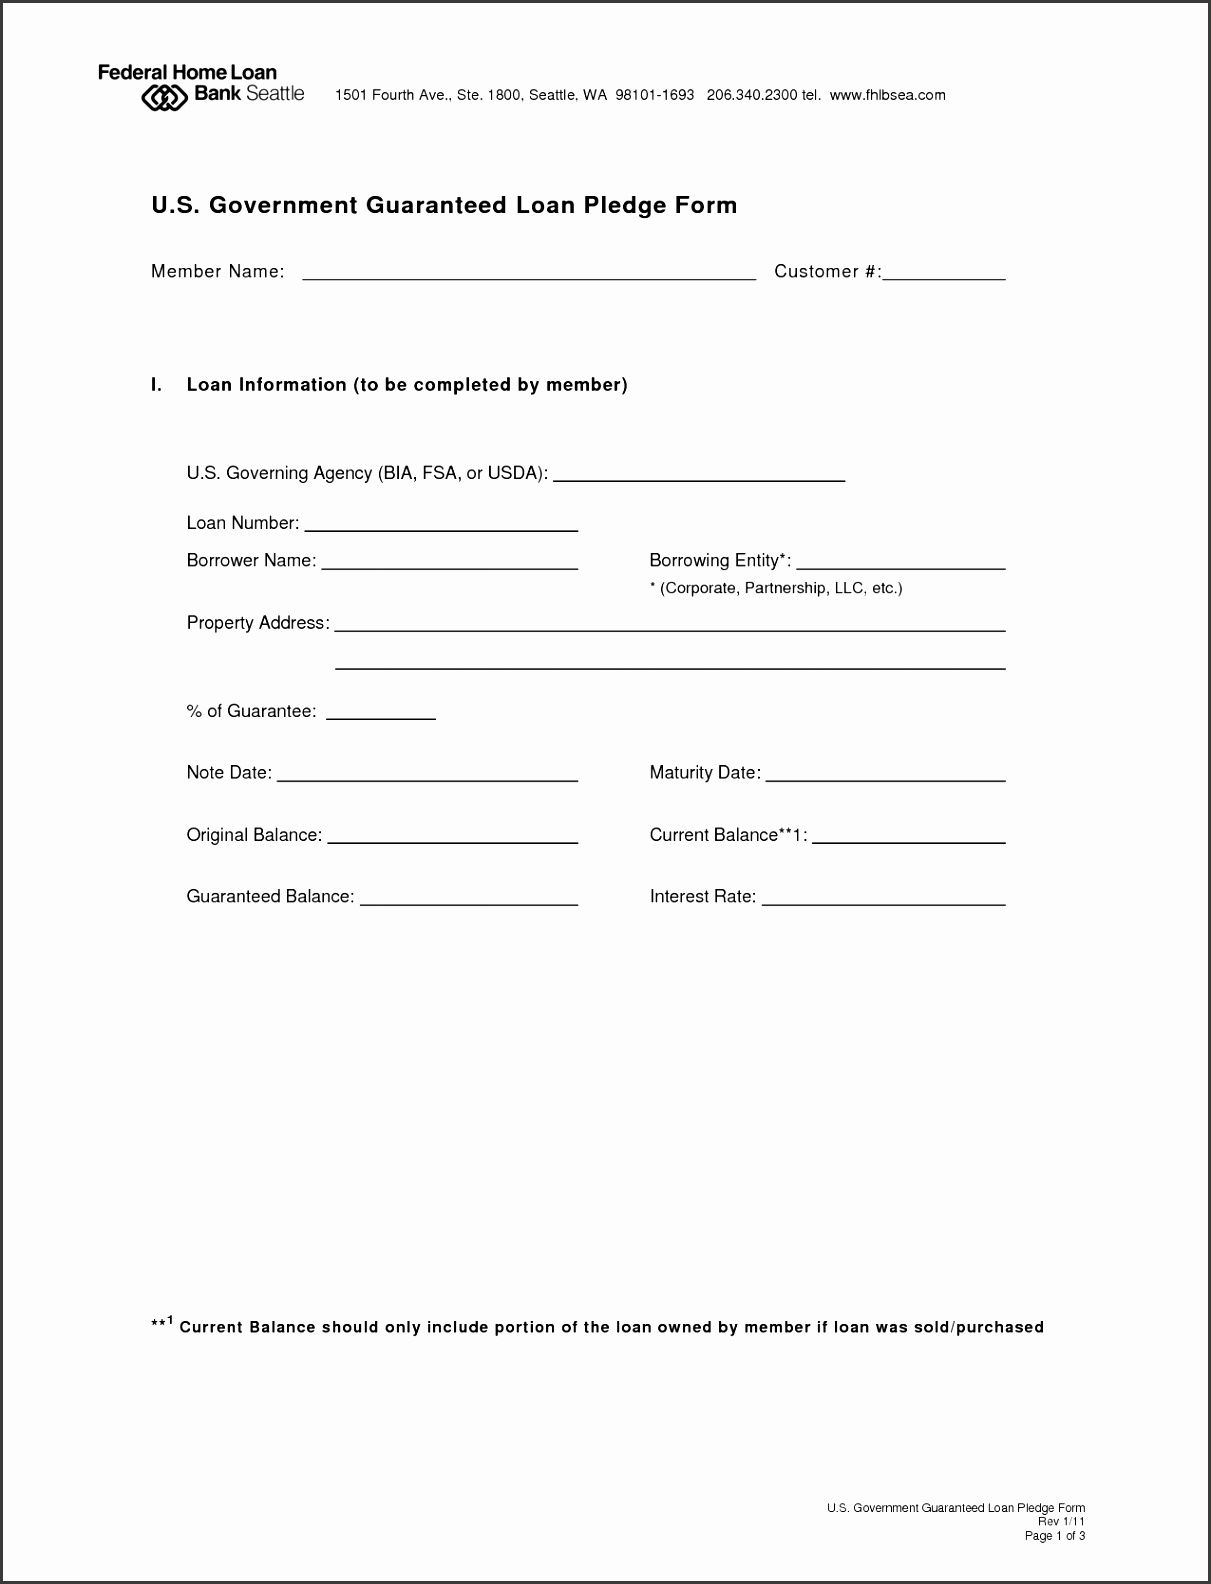 Loan Agreement Form Legal Template Free Printable Application Personal Document 1280